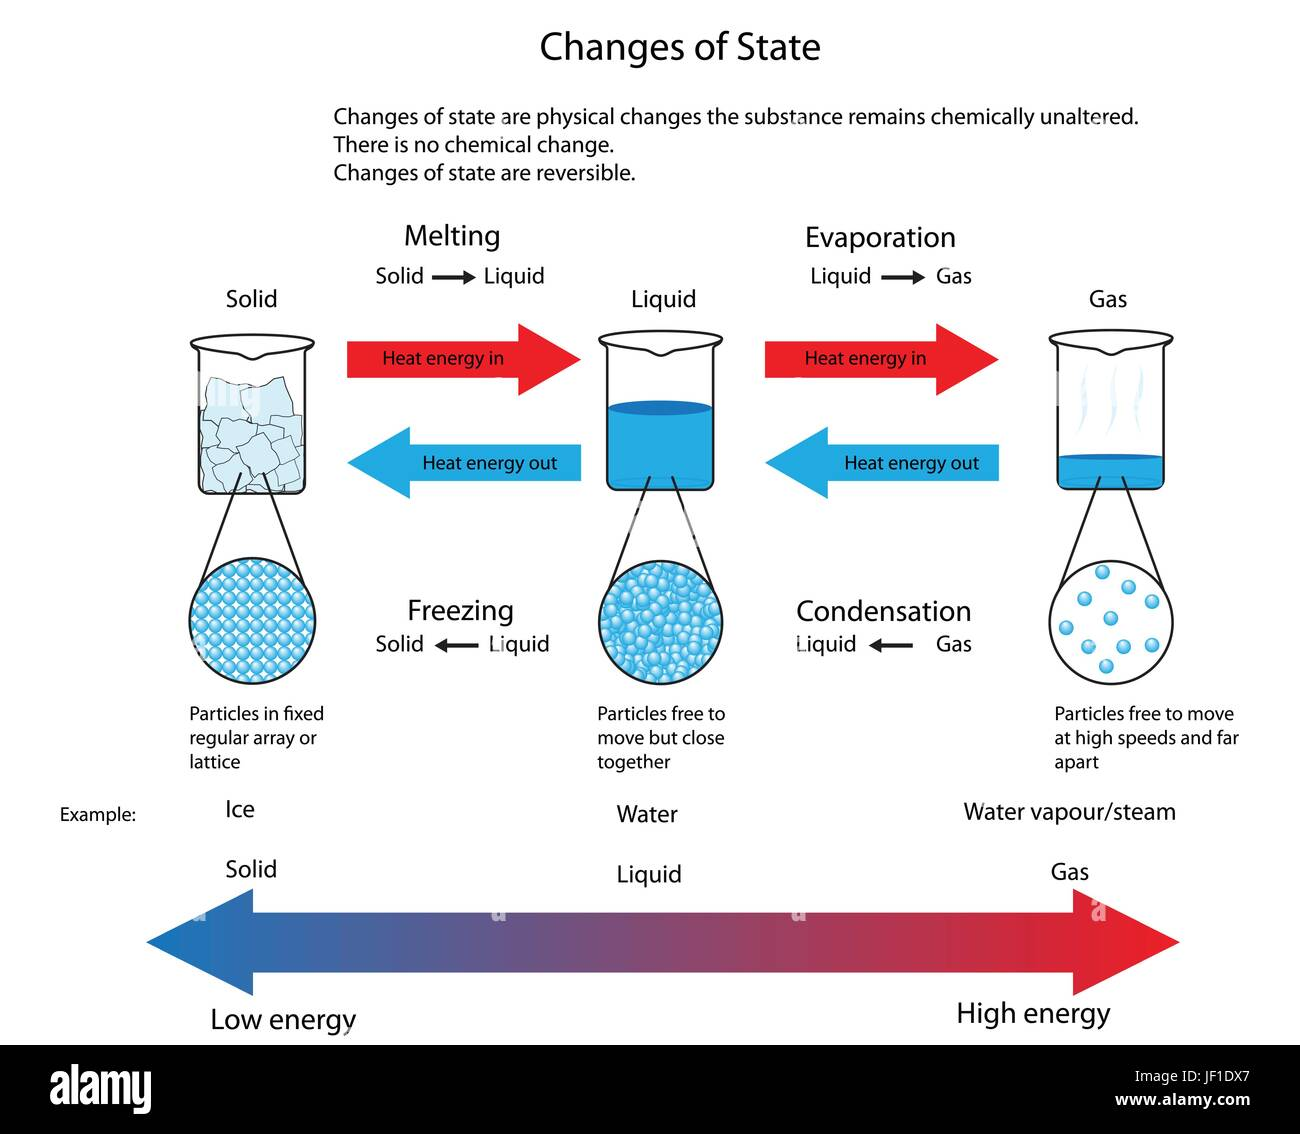 diagram illustrating the physical changes of state from solid to